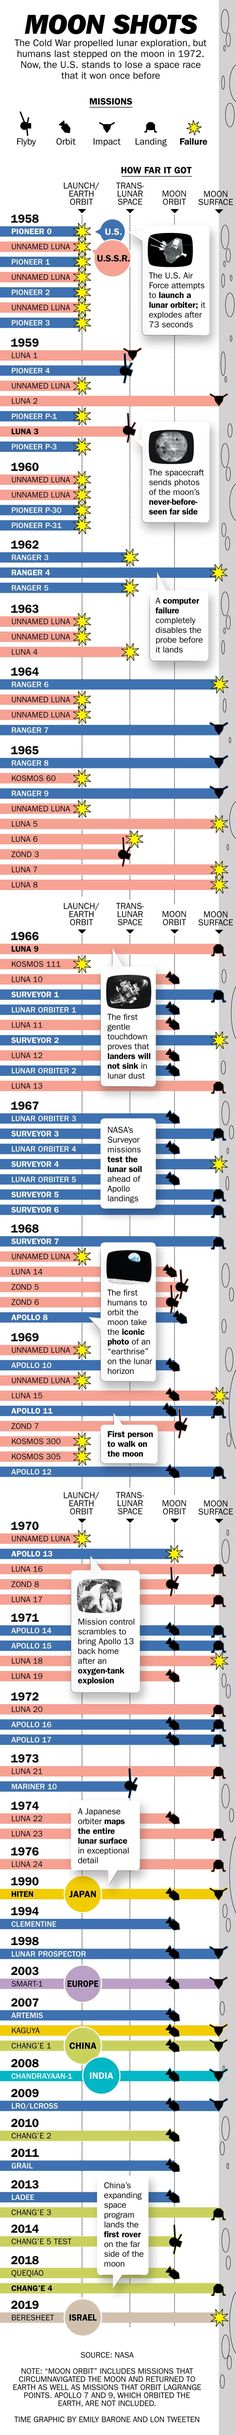 Here's Every Space Mission to the Moon in One Chart | Time